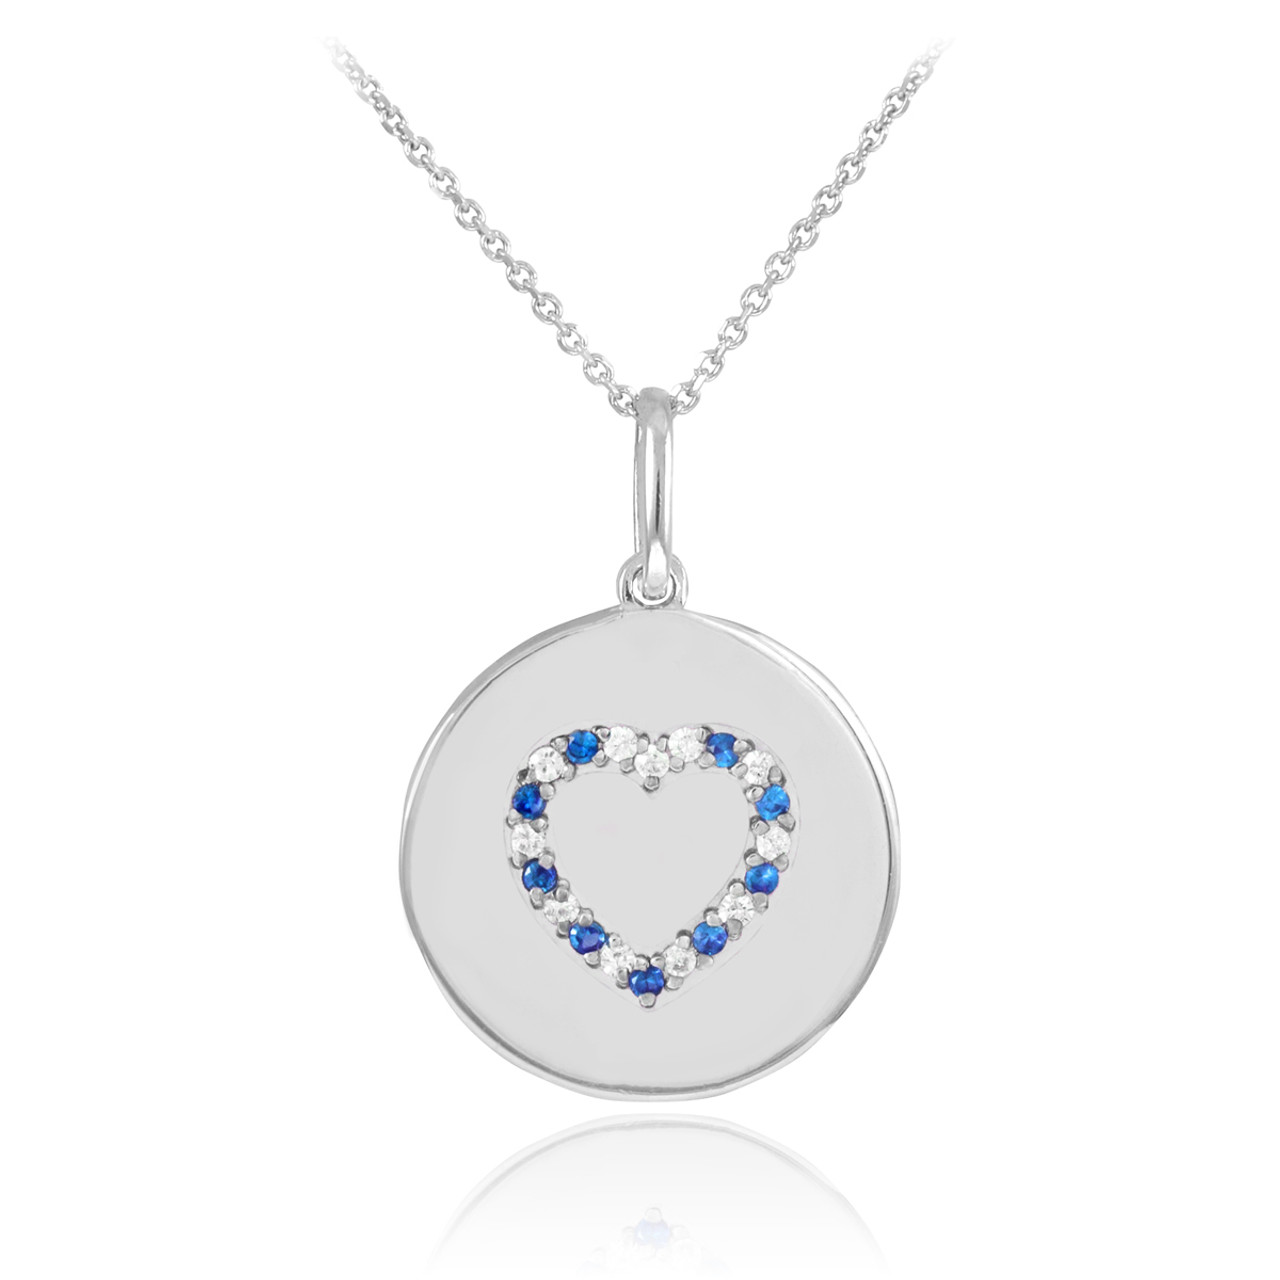 Disc pendant heart disc pendant necklace diamond disc pendant heart disc pendant necklace with diamonds and sapphire in 14k white gold aloadofball Choice Image